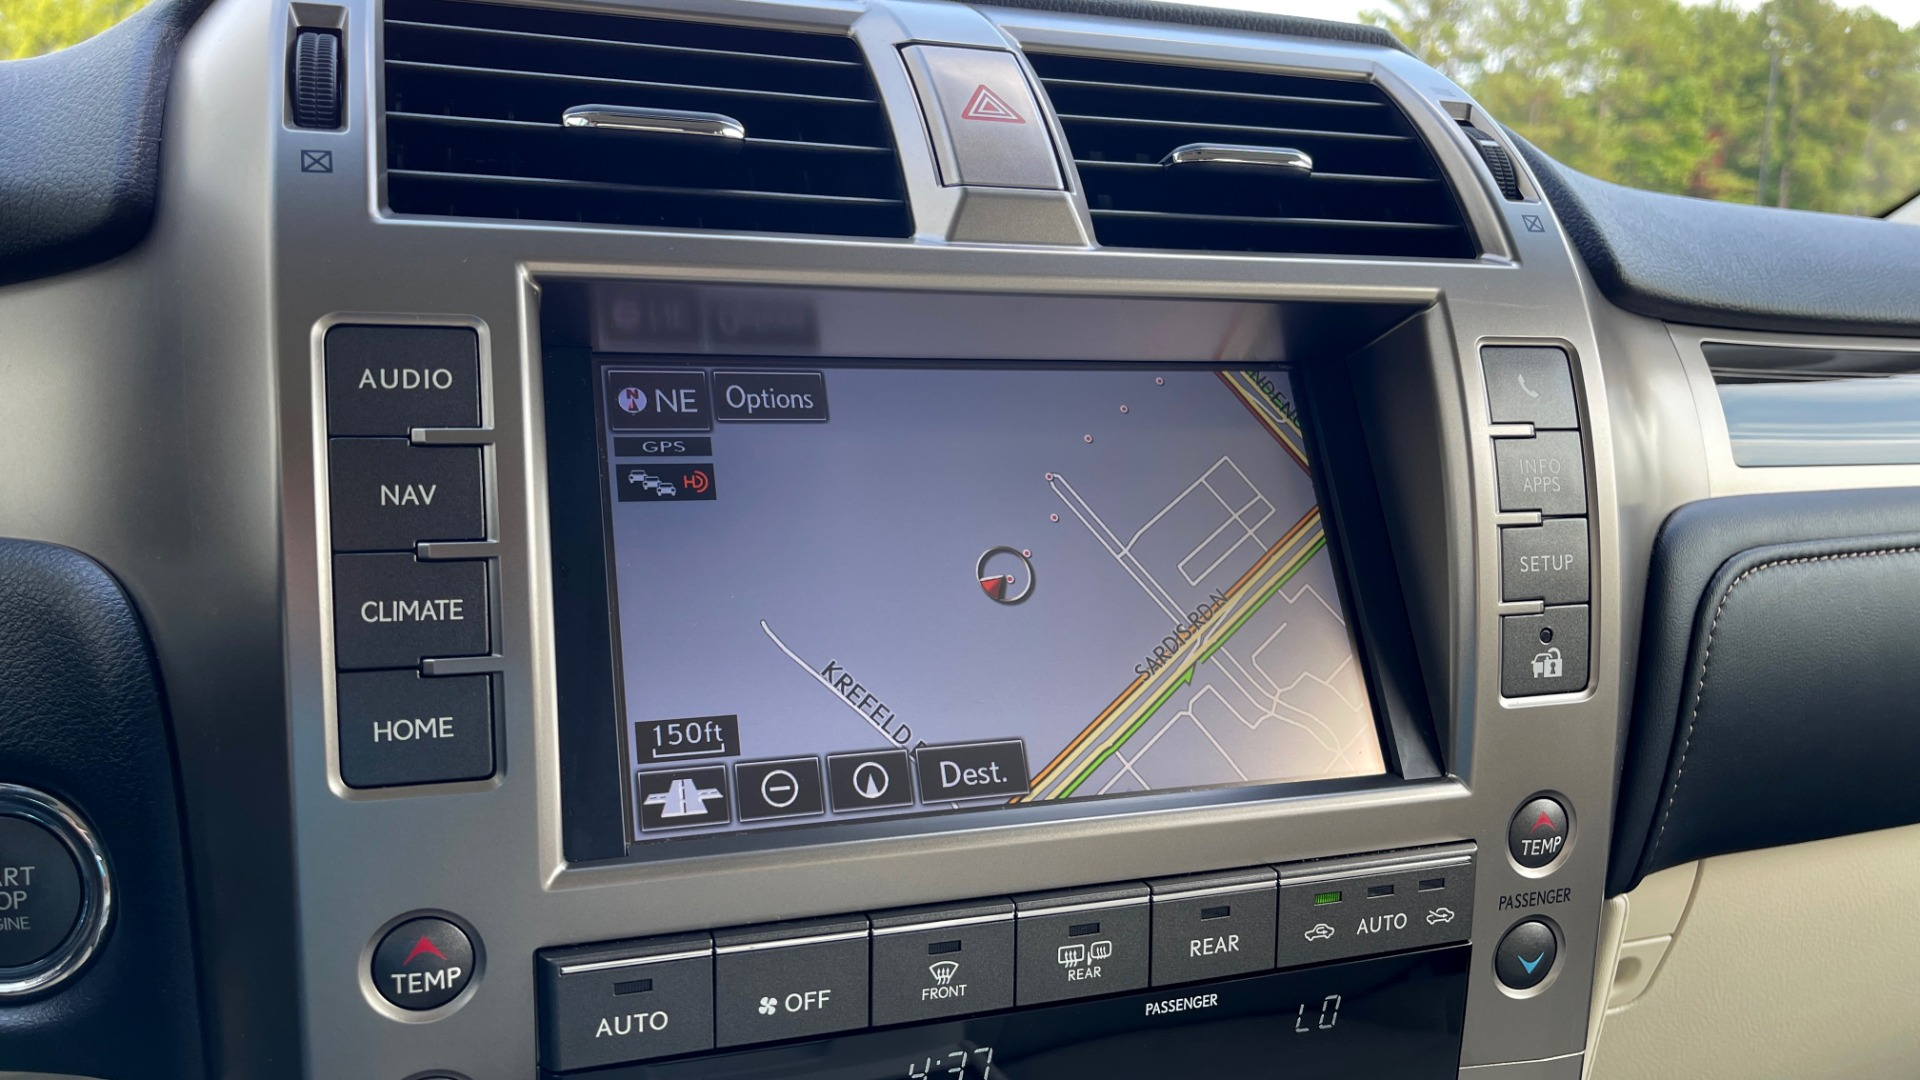 Used 2020 Lexus GX 460 PREMIUM / AWD / NAV / SUNROOF / 3-ROW / REARVIEW for sale $54,495 at Formula Imports in Charlotte NC 28227 40